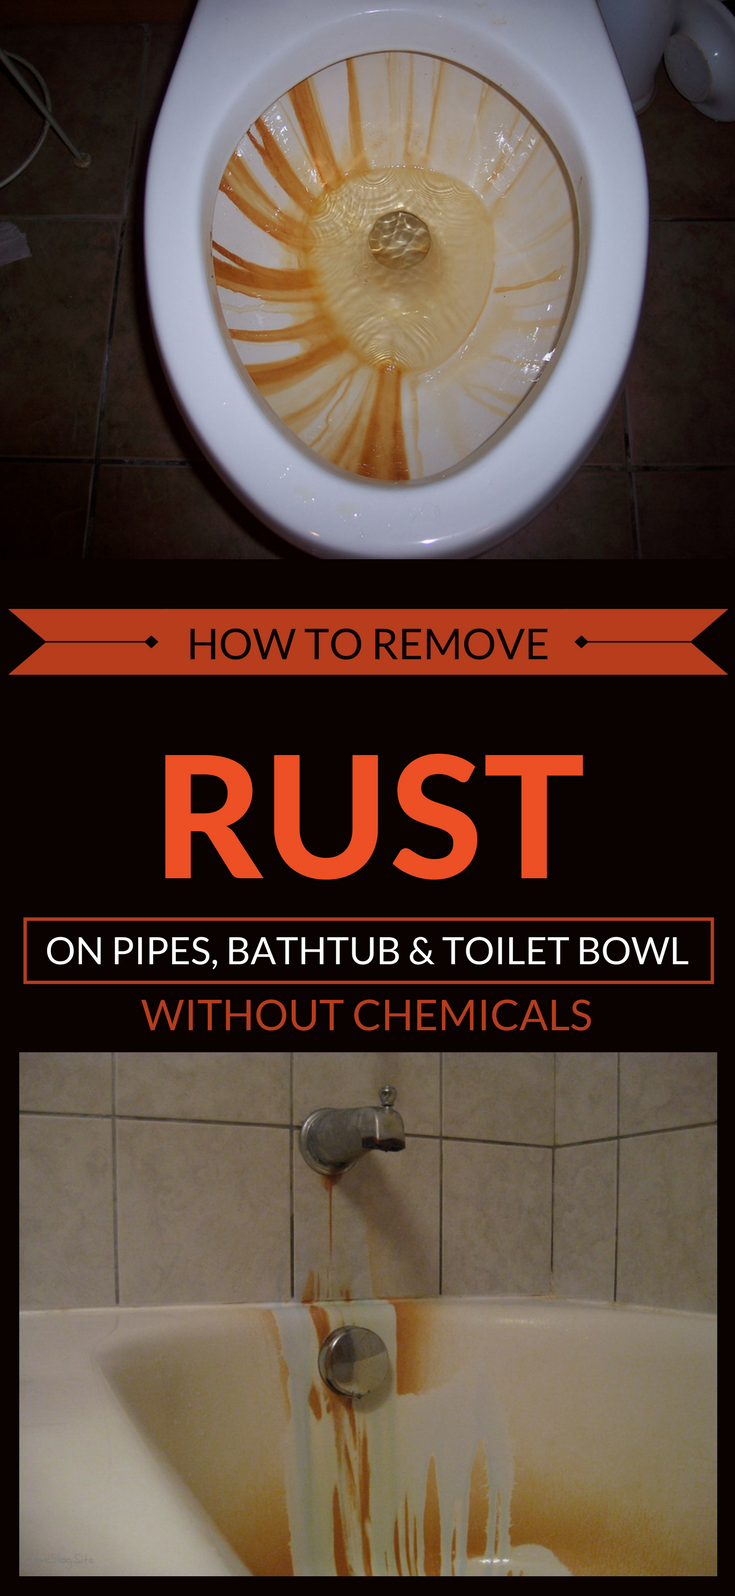 How To Remove Rust On Pipes Bathtub And Toilet Bowl